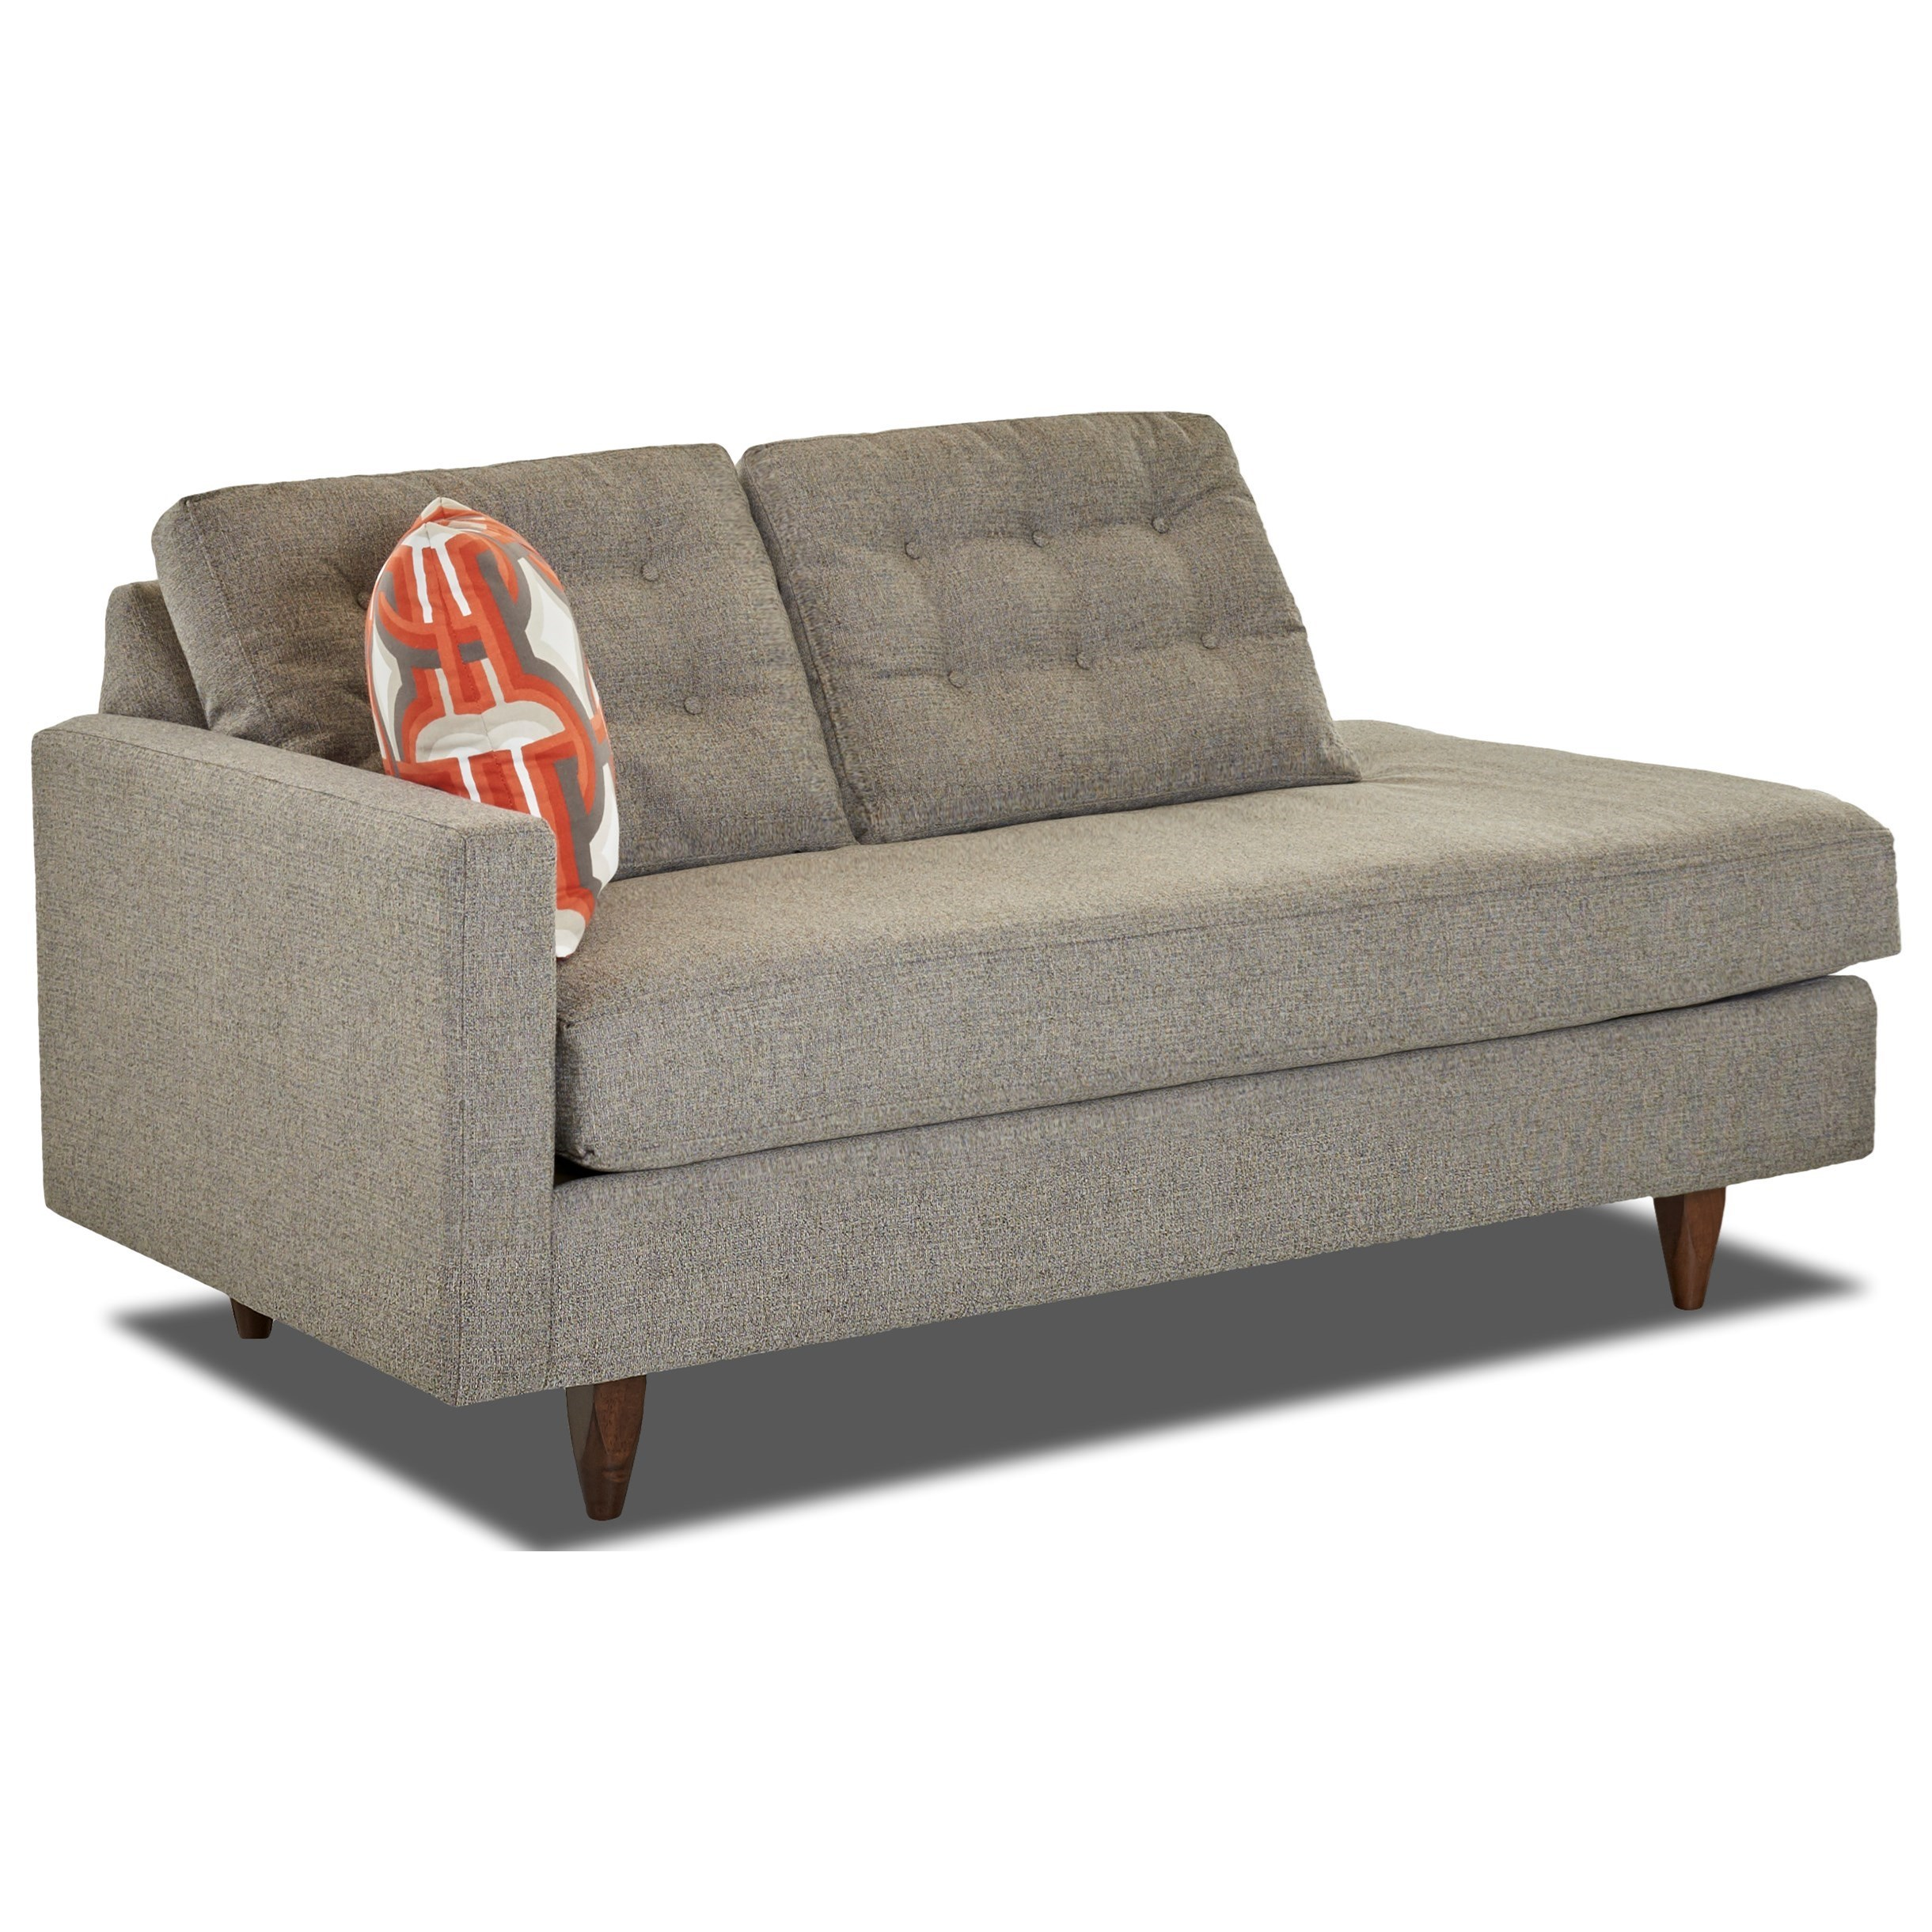 Contemporary Left-Arm-Facing Chaise Lounge with Tufted Back